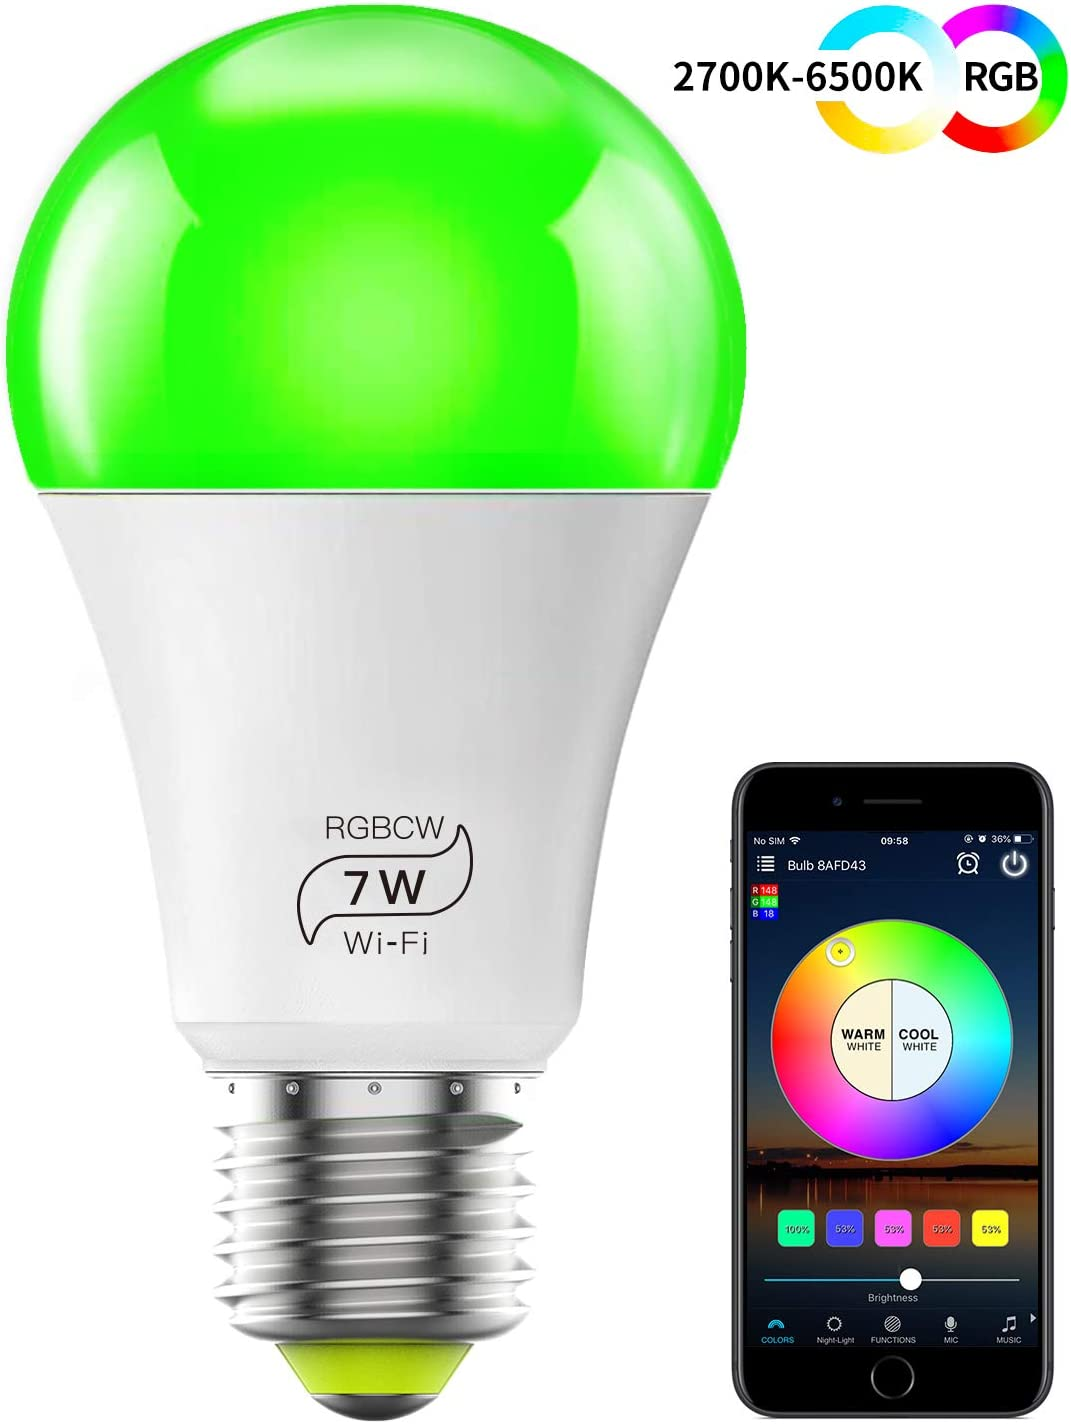 MagicLight Smart Light Bulb (No Hub Required), E27 A19 7W (60w Equivalent) Multicolor 2700k-6500k Dimmable WiFi LED Bulb, Compatible with Alexa Google Home Siri IFTTT